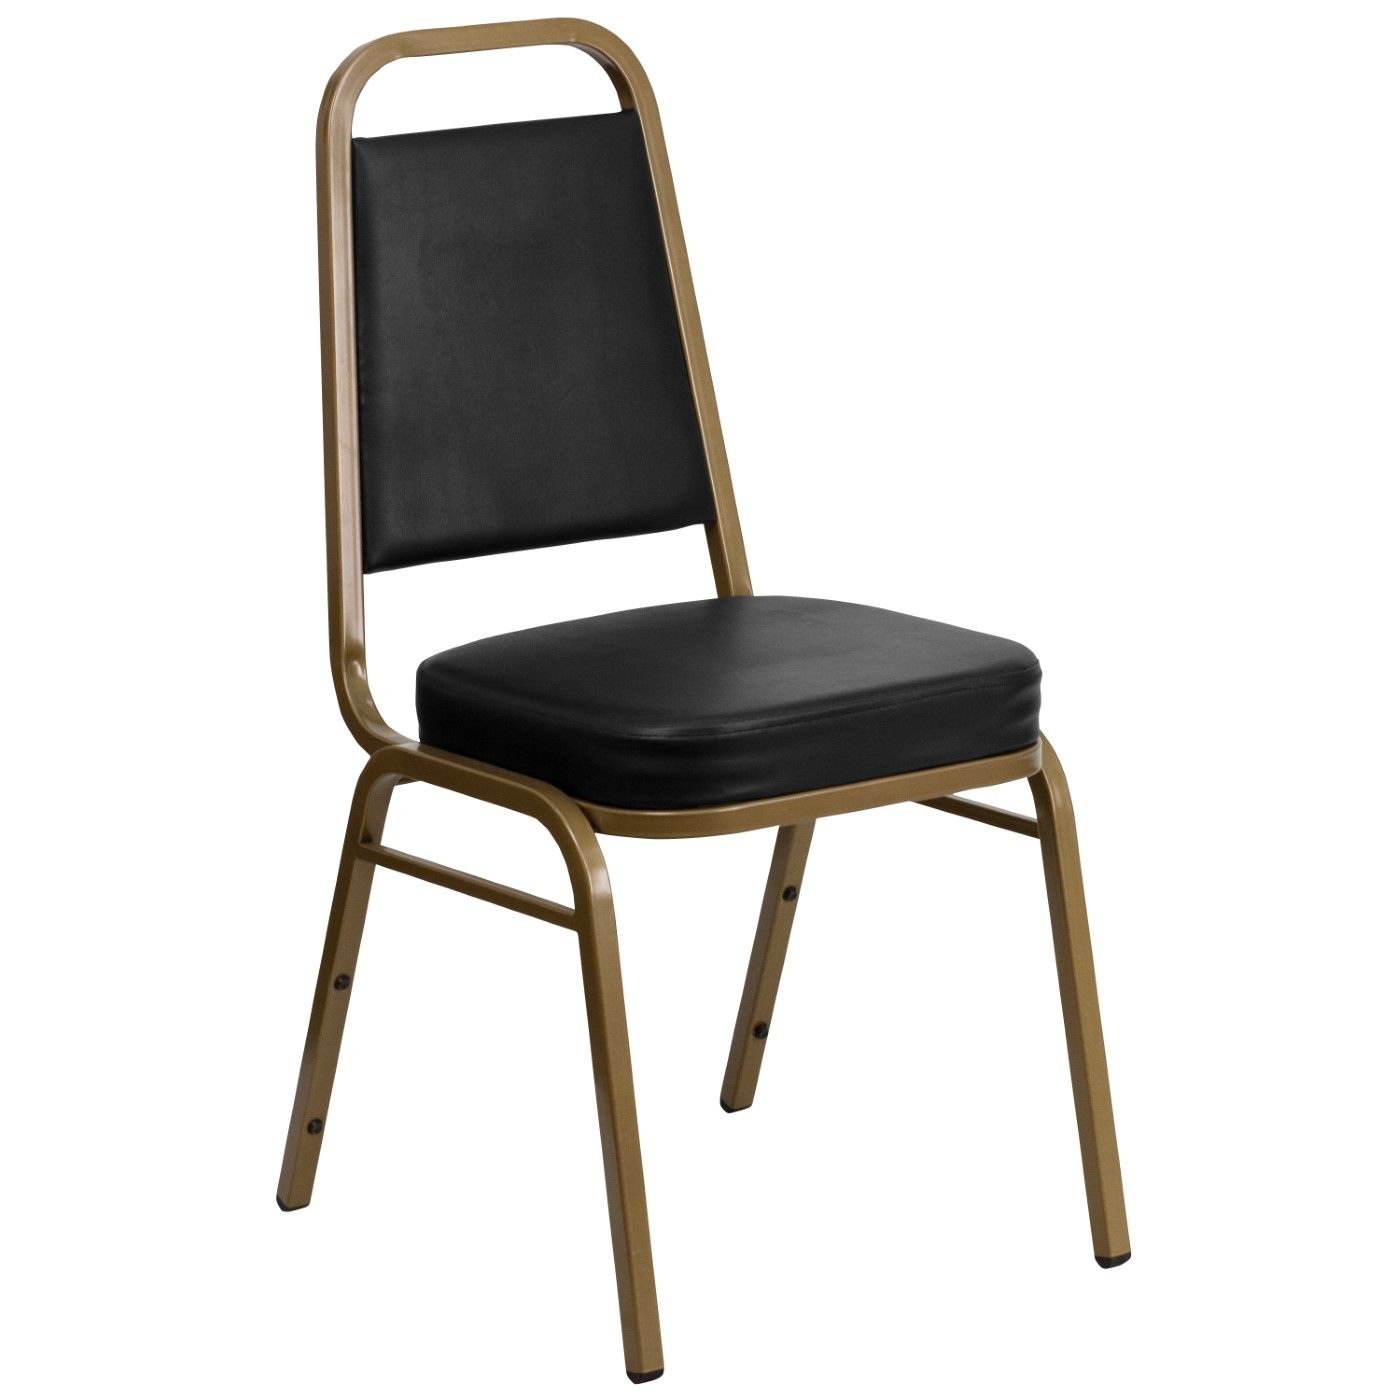 TOUGH ENOUGH Series Trapezoidal Back Stacking Banquet Chair in Black Vinyl - Gold Frame